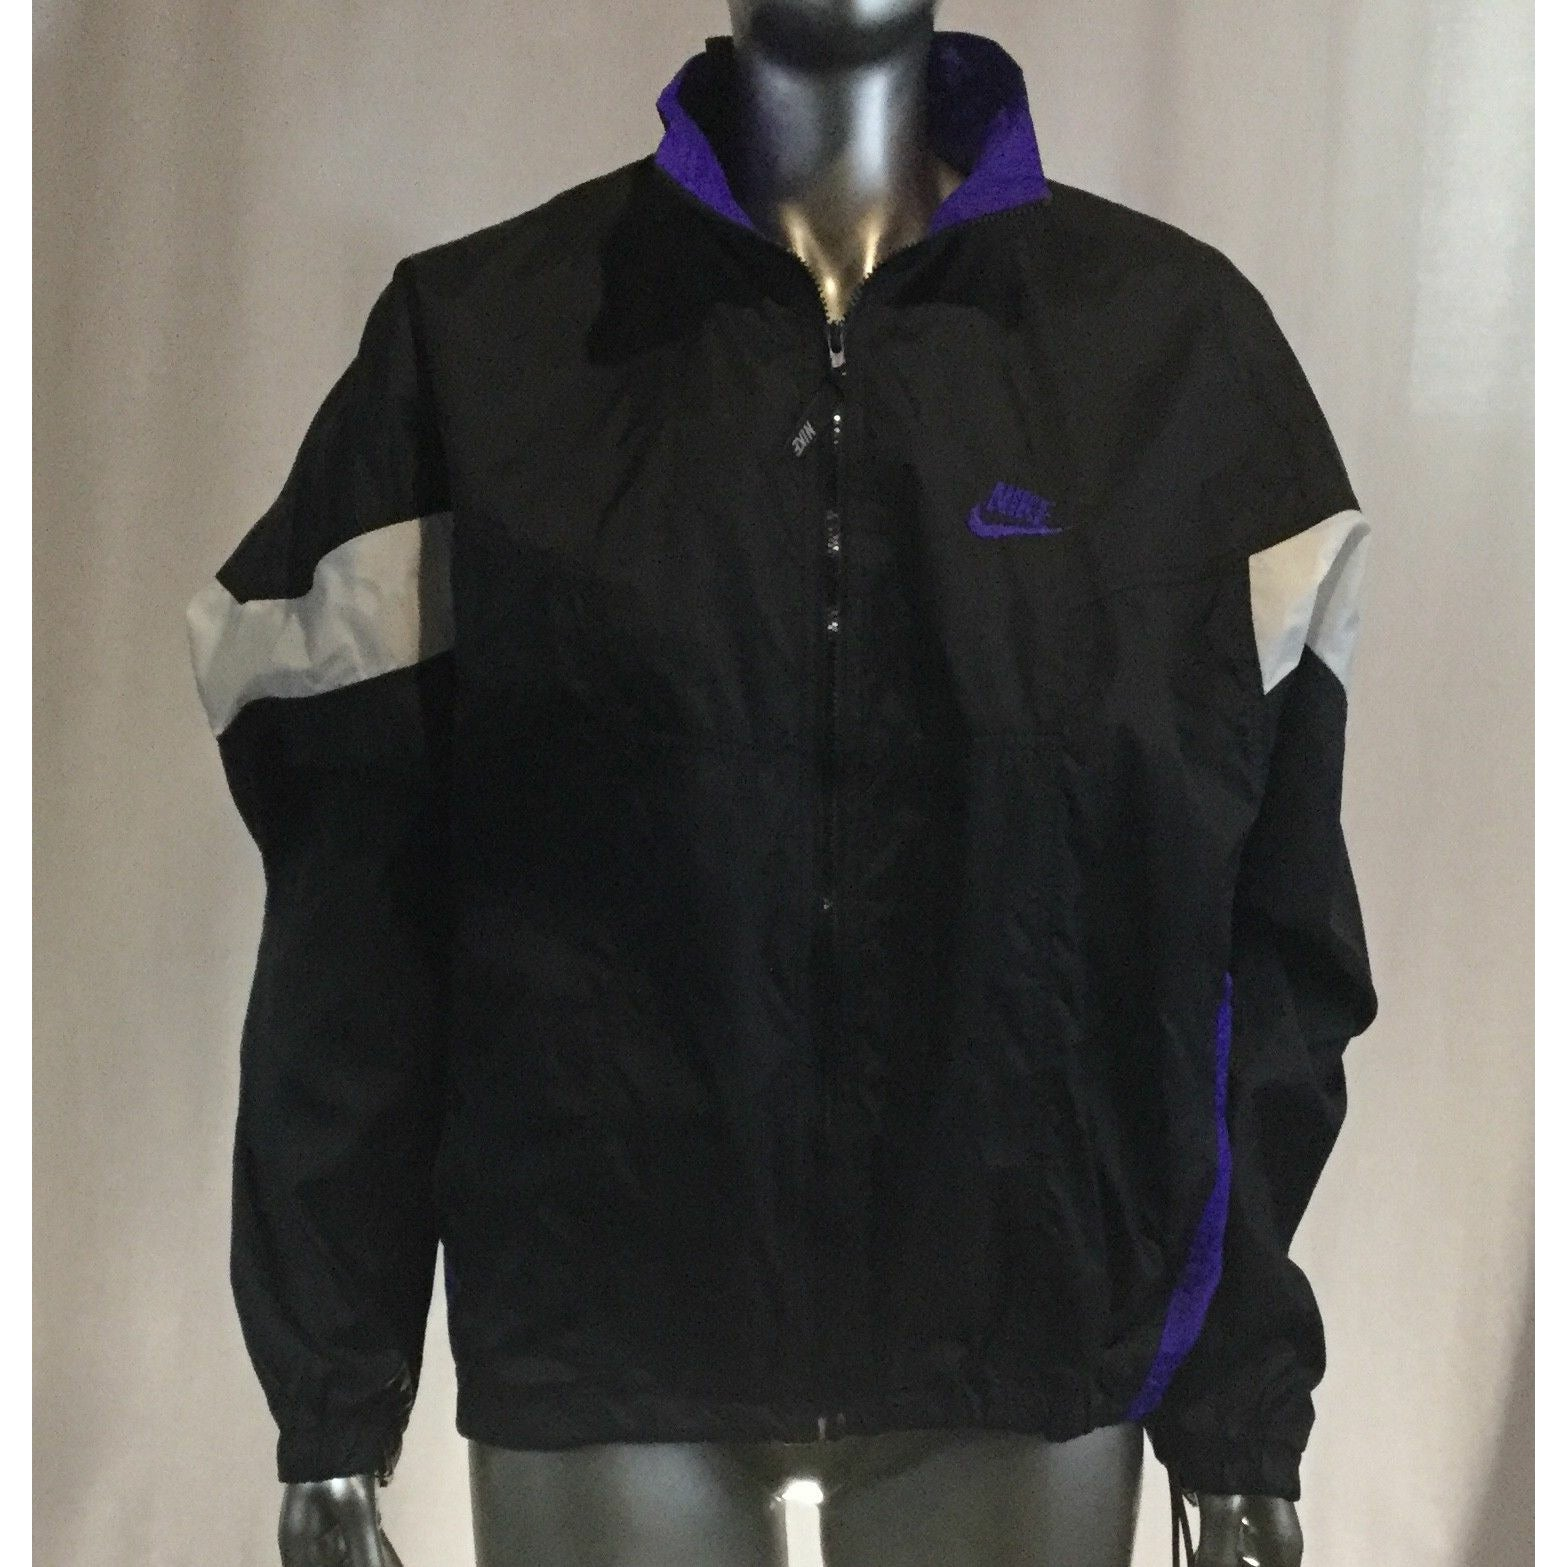 Vintage Nike Full Zip Windbreaker Jacket Men's Sz M 90's Black, purple, white